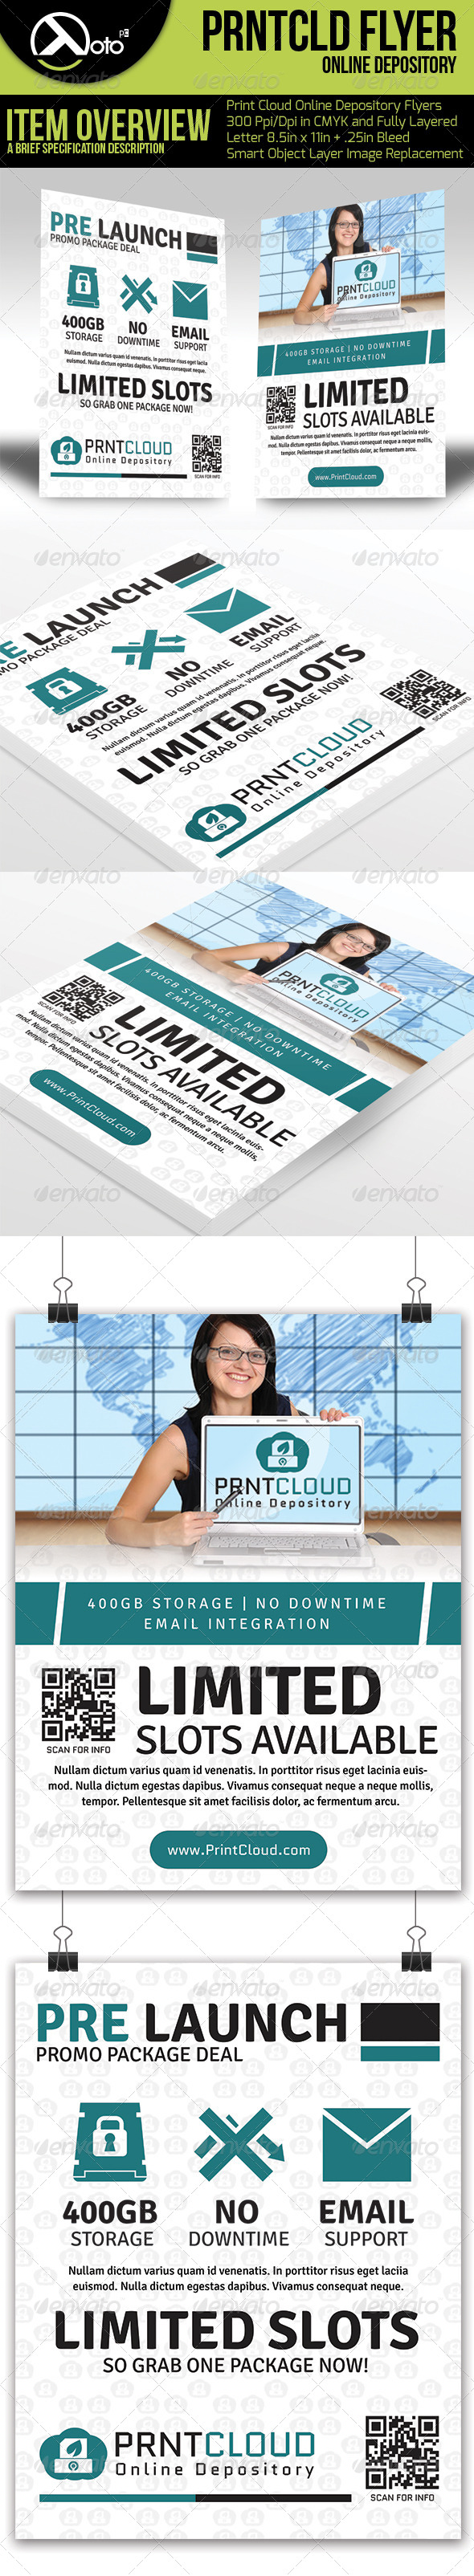 GraphicRiver Print Cloud Online Depository Flyers 6557798